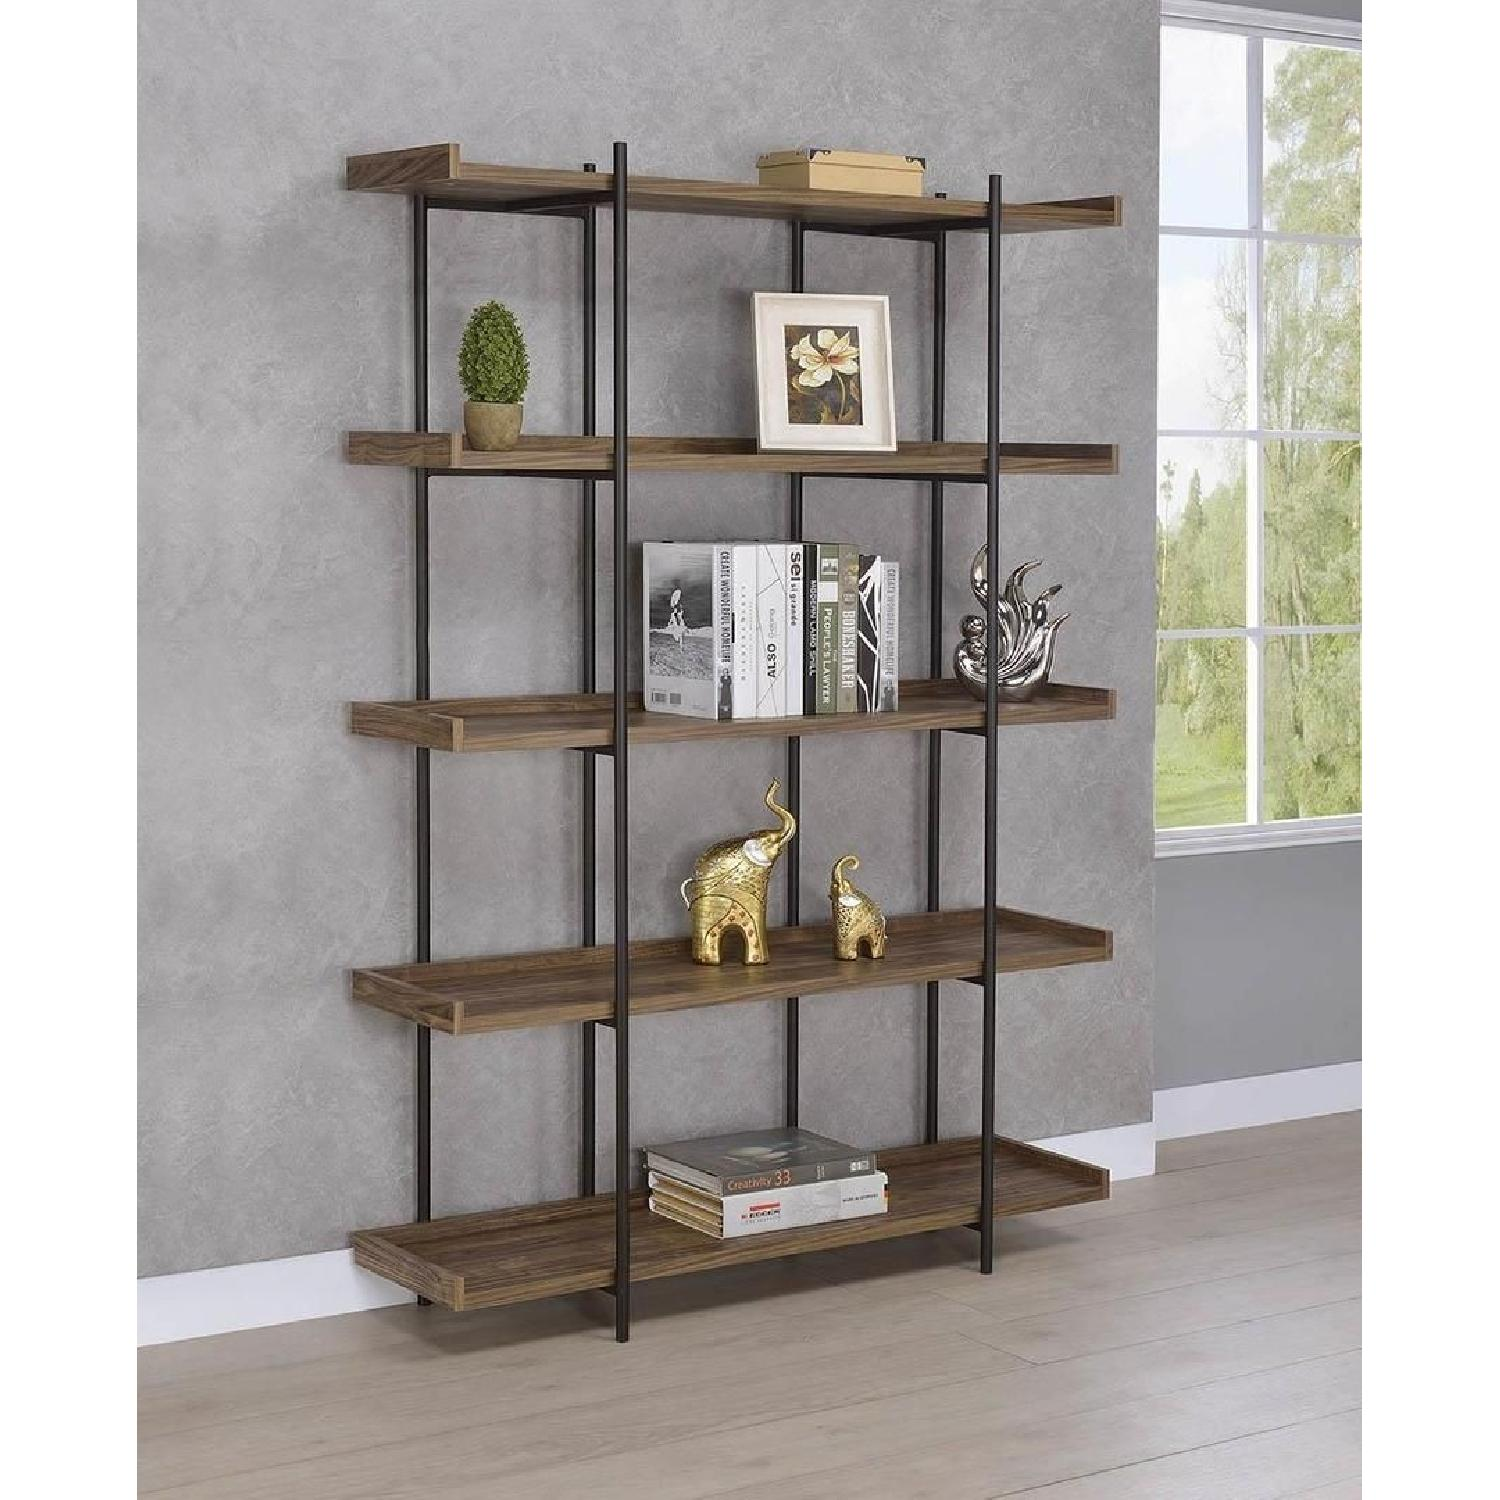 Industrial Style 5-Shelves Bookcase in Aged Walnut Finish - image-2